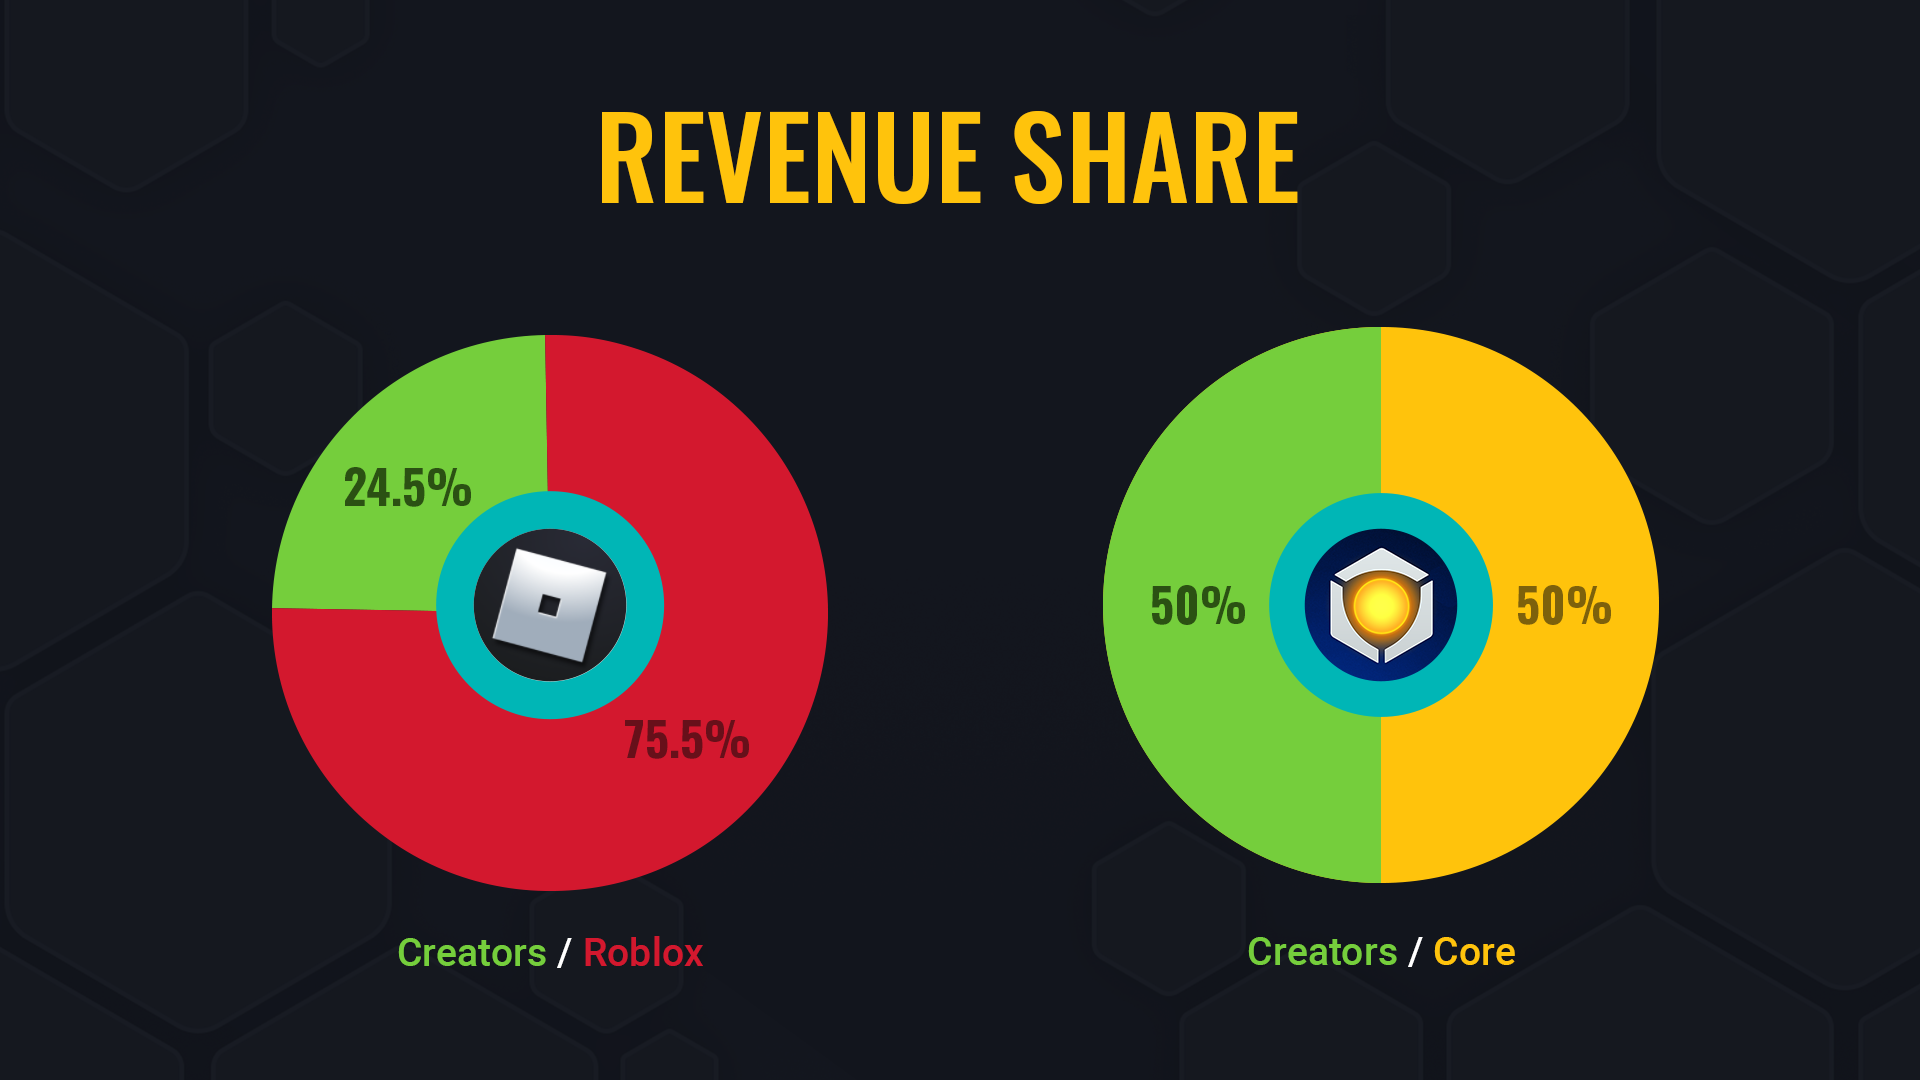 Core - Perks Revenue Share